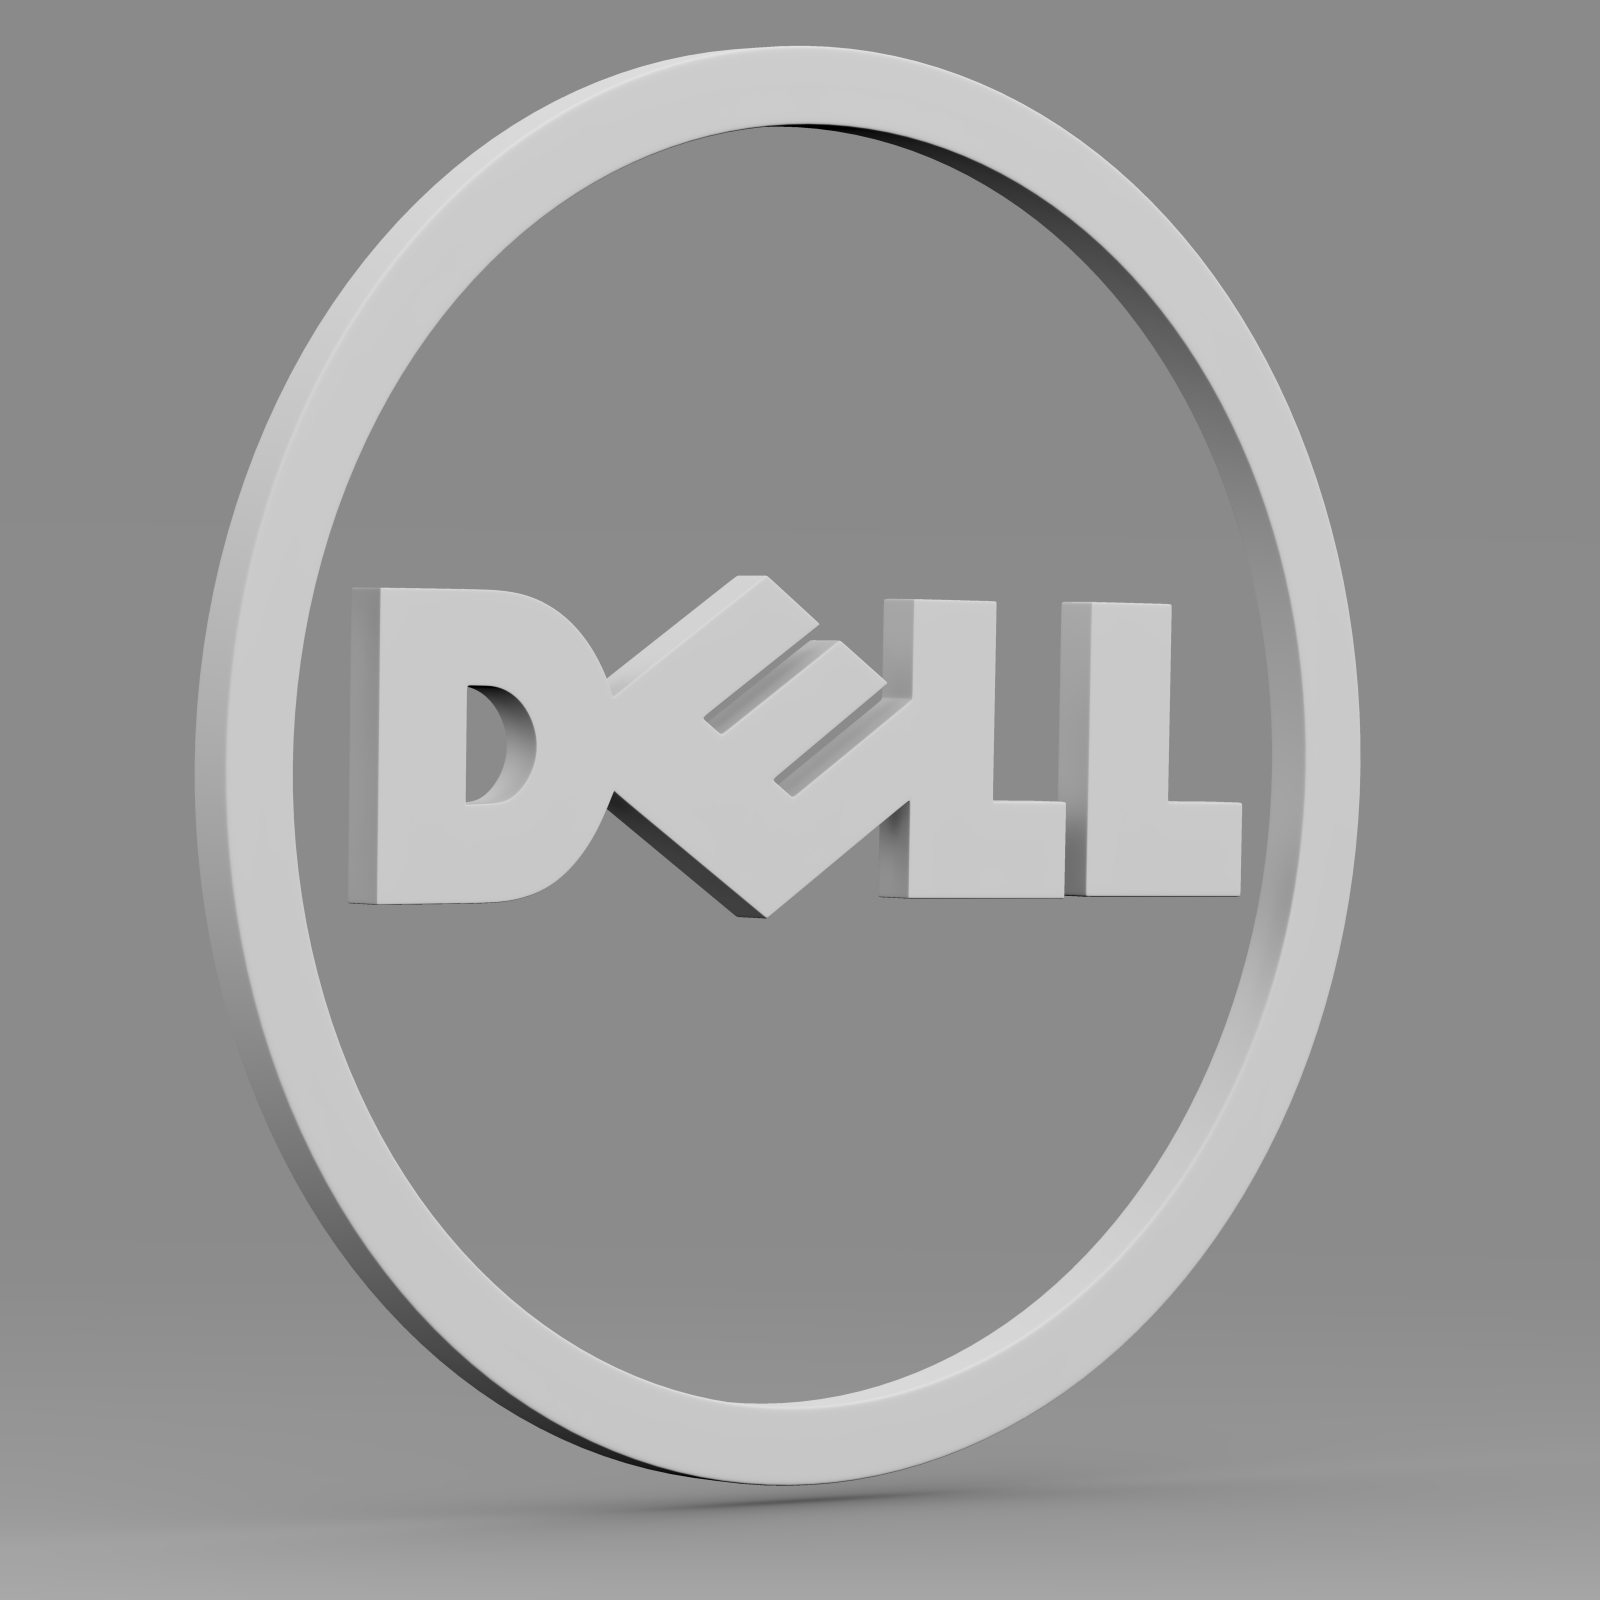 dell logo 2 3d model 3ds fbx c4d lwo ma mb hrc xsi  obj 223628